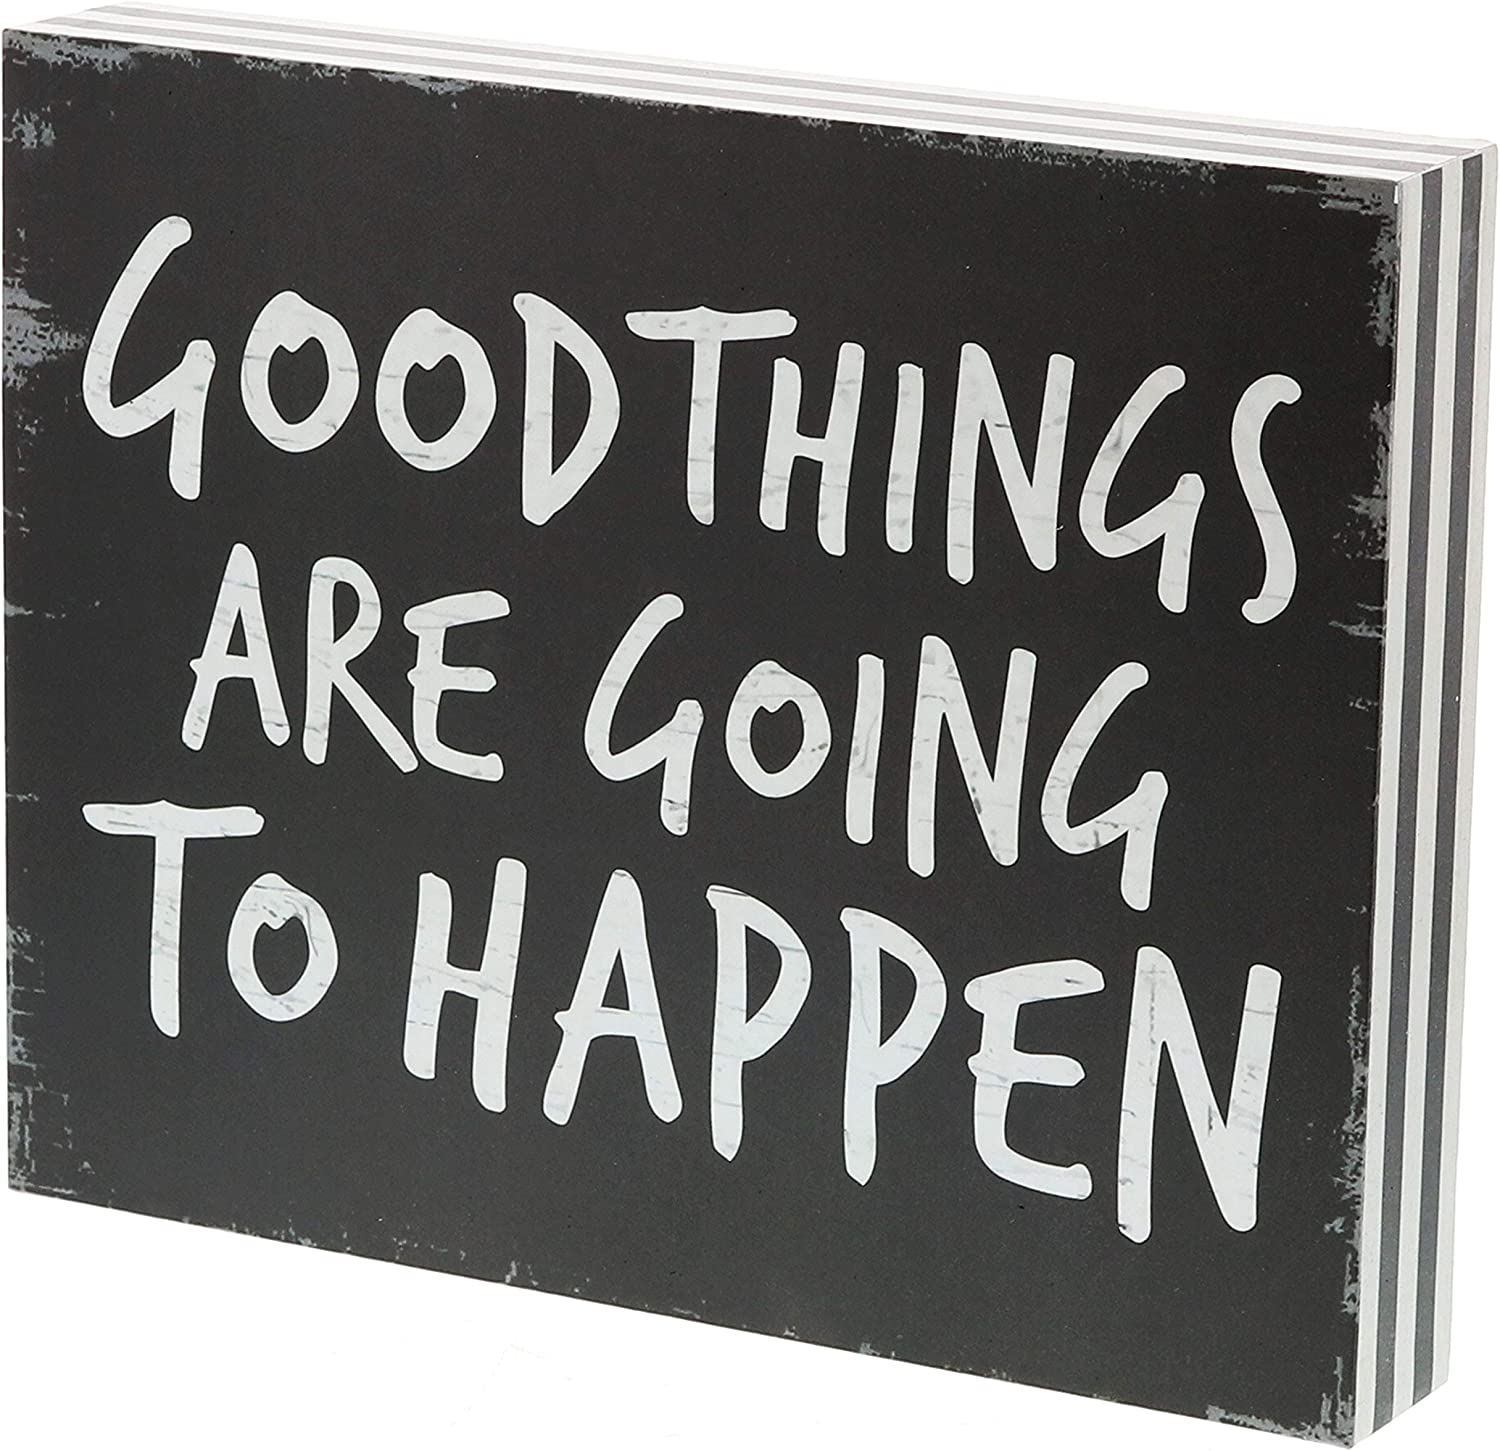 """Barnyard Designs Good Things are Going to Happen Box Sign Vintage Primitive Country Positive Quotes Home Wall Decor 10"""" x 8"""""""